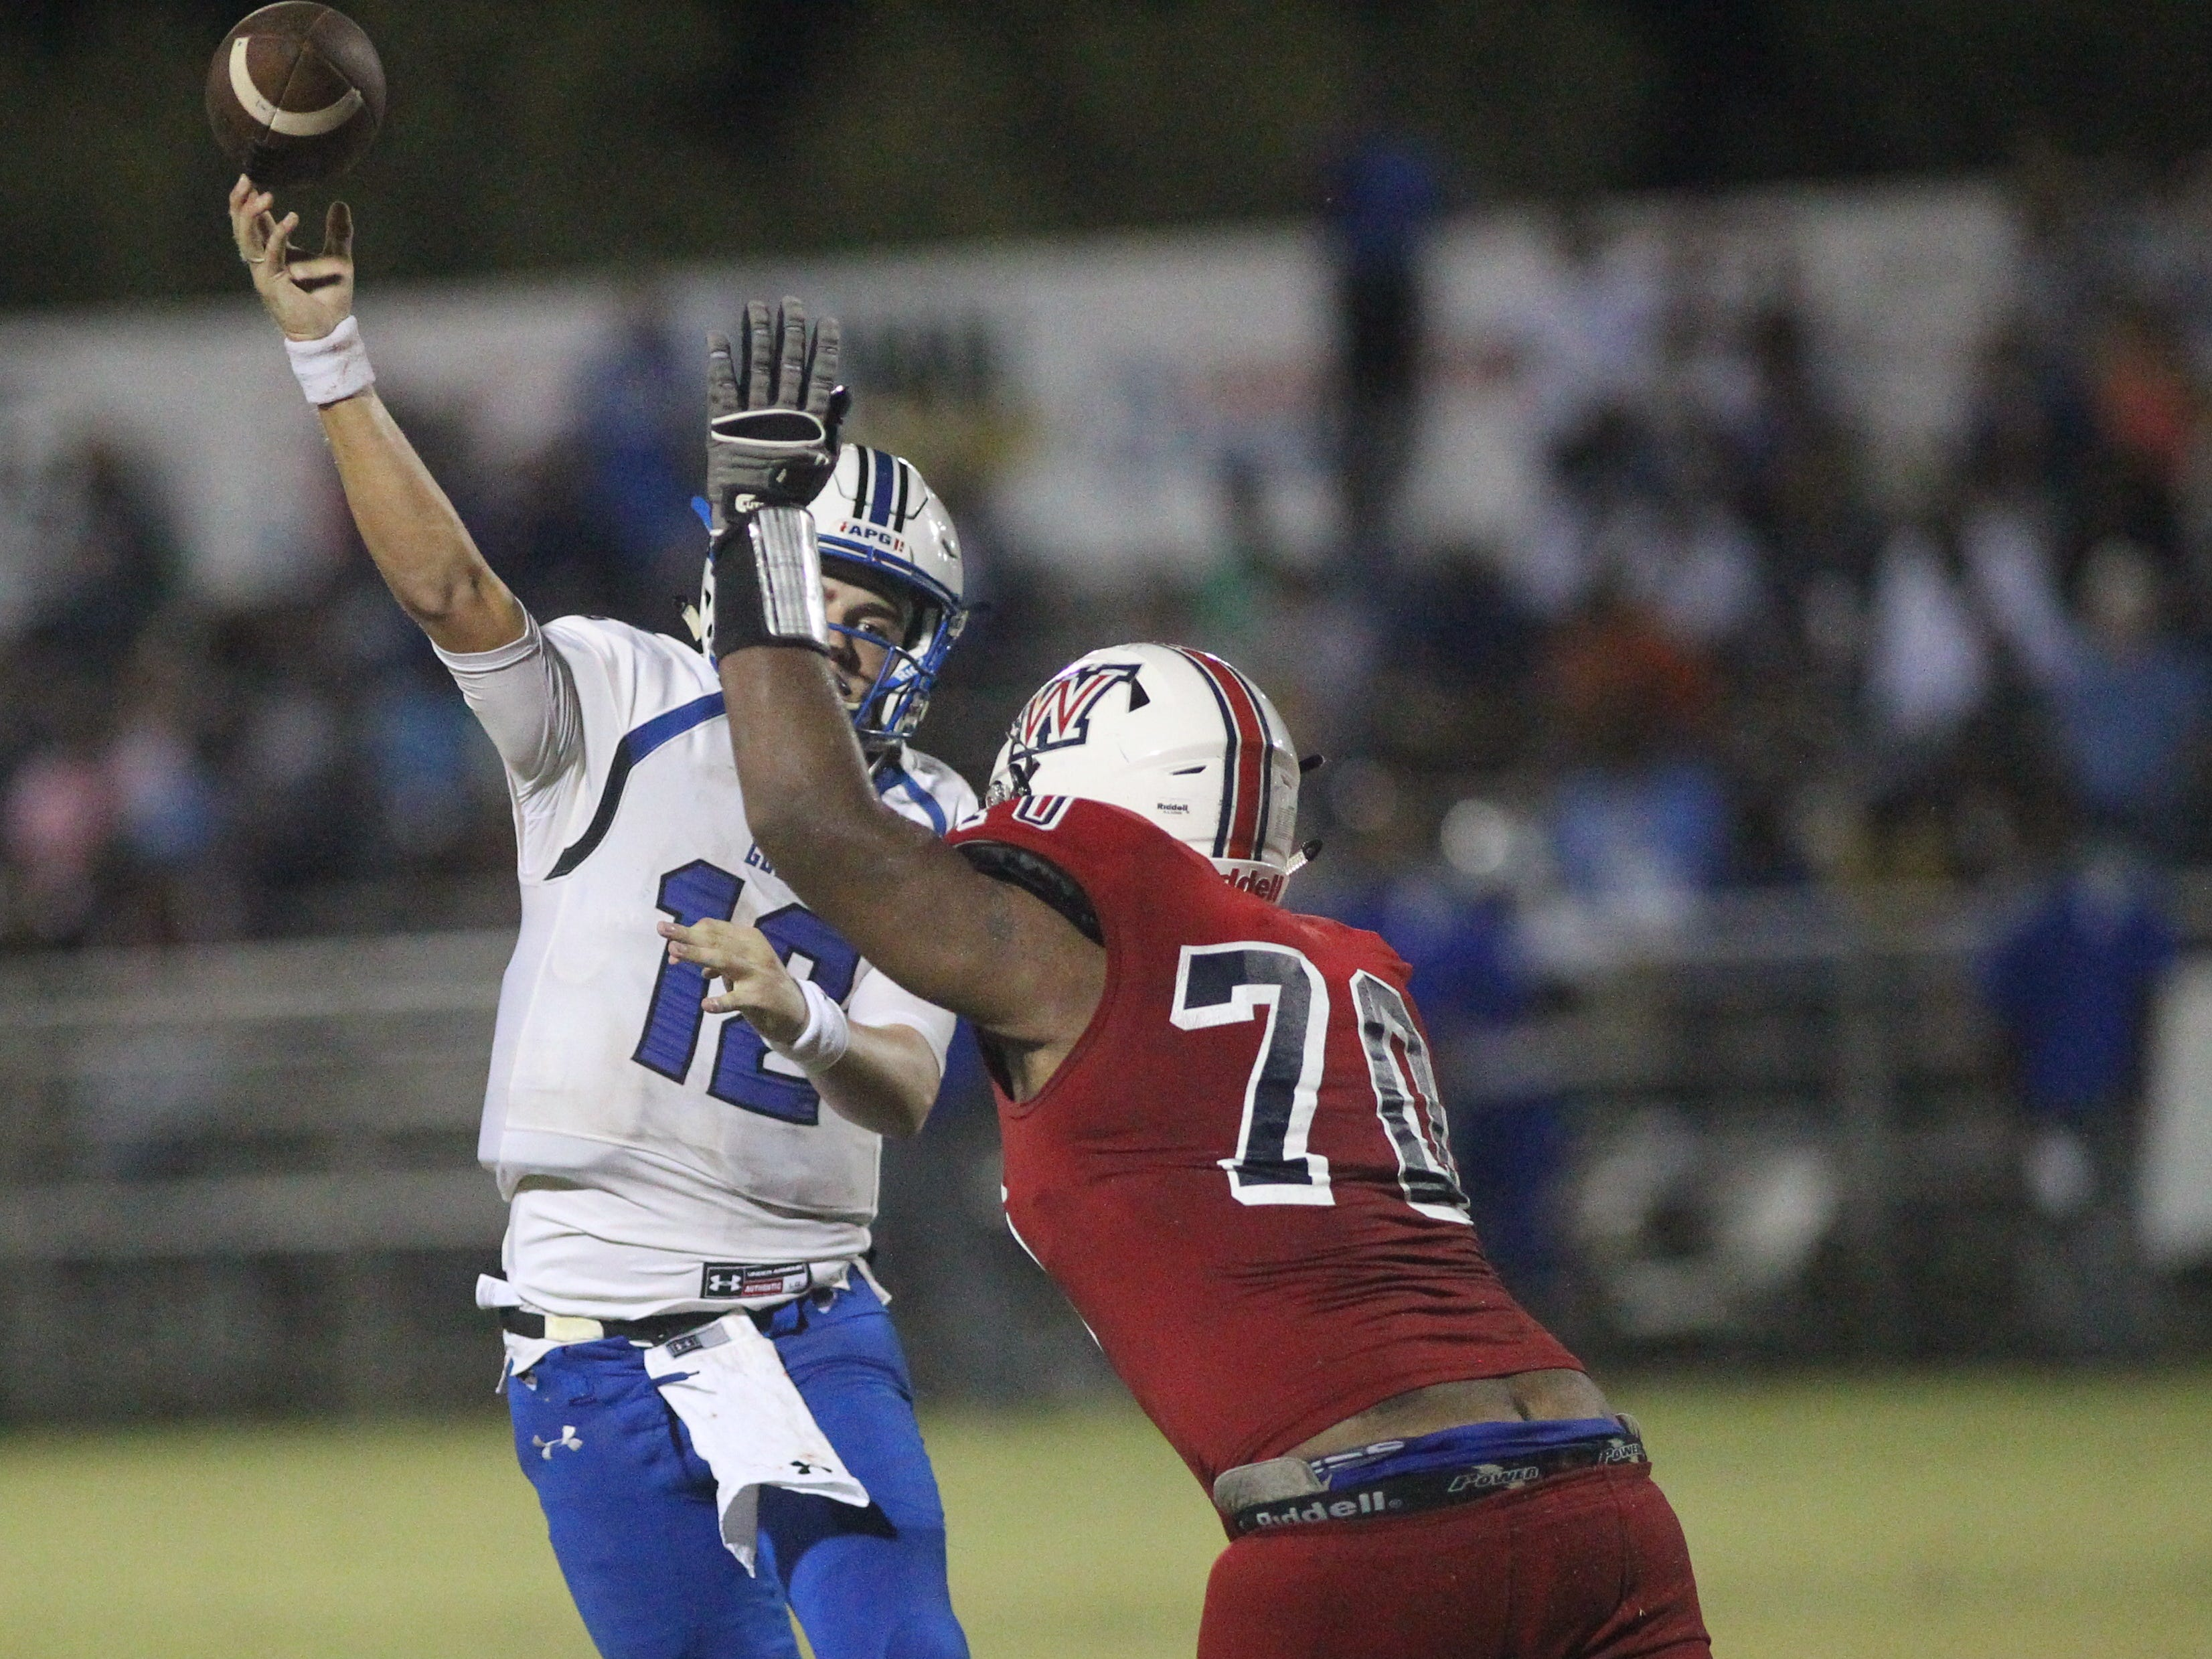 Godby quarterback Trey Fisher gets off a pass with a hand in his face as the Cougars beat Wakulla 37-13 on Friday night.